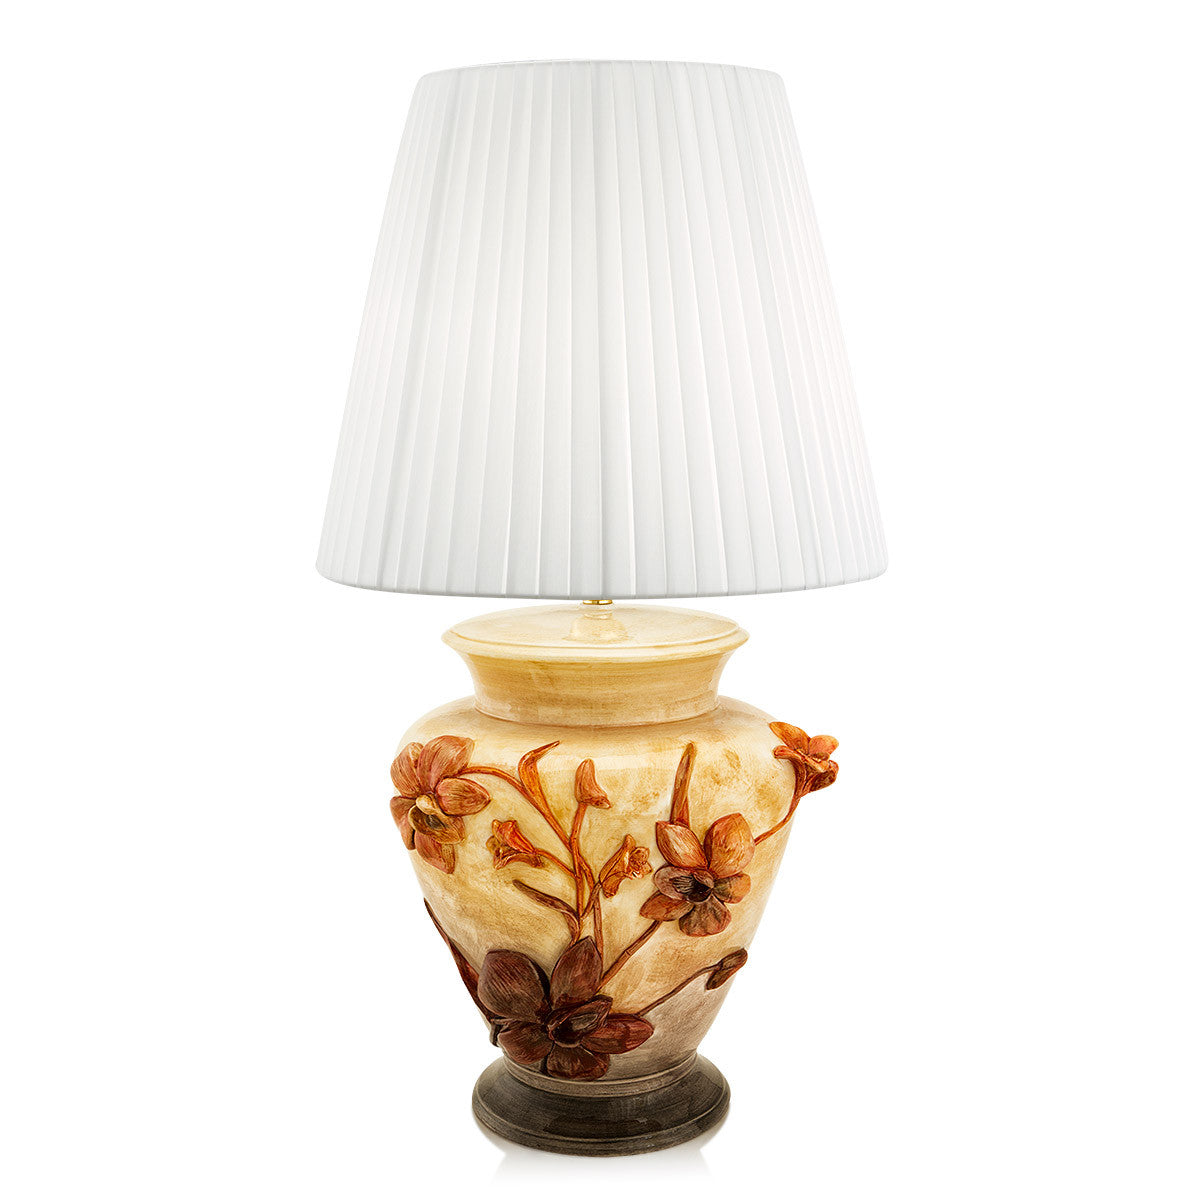 Hand painted pottery porcelain lamp Thai Orchid finished with 24kt gold and warm colors